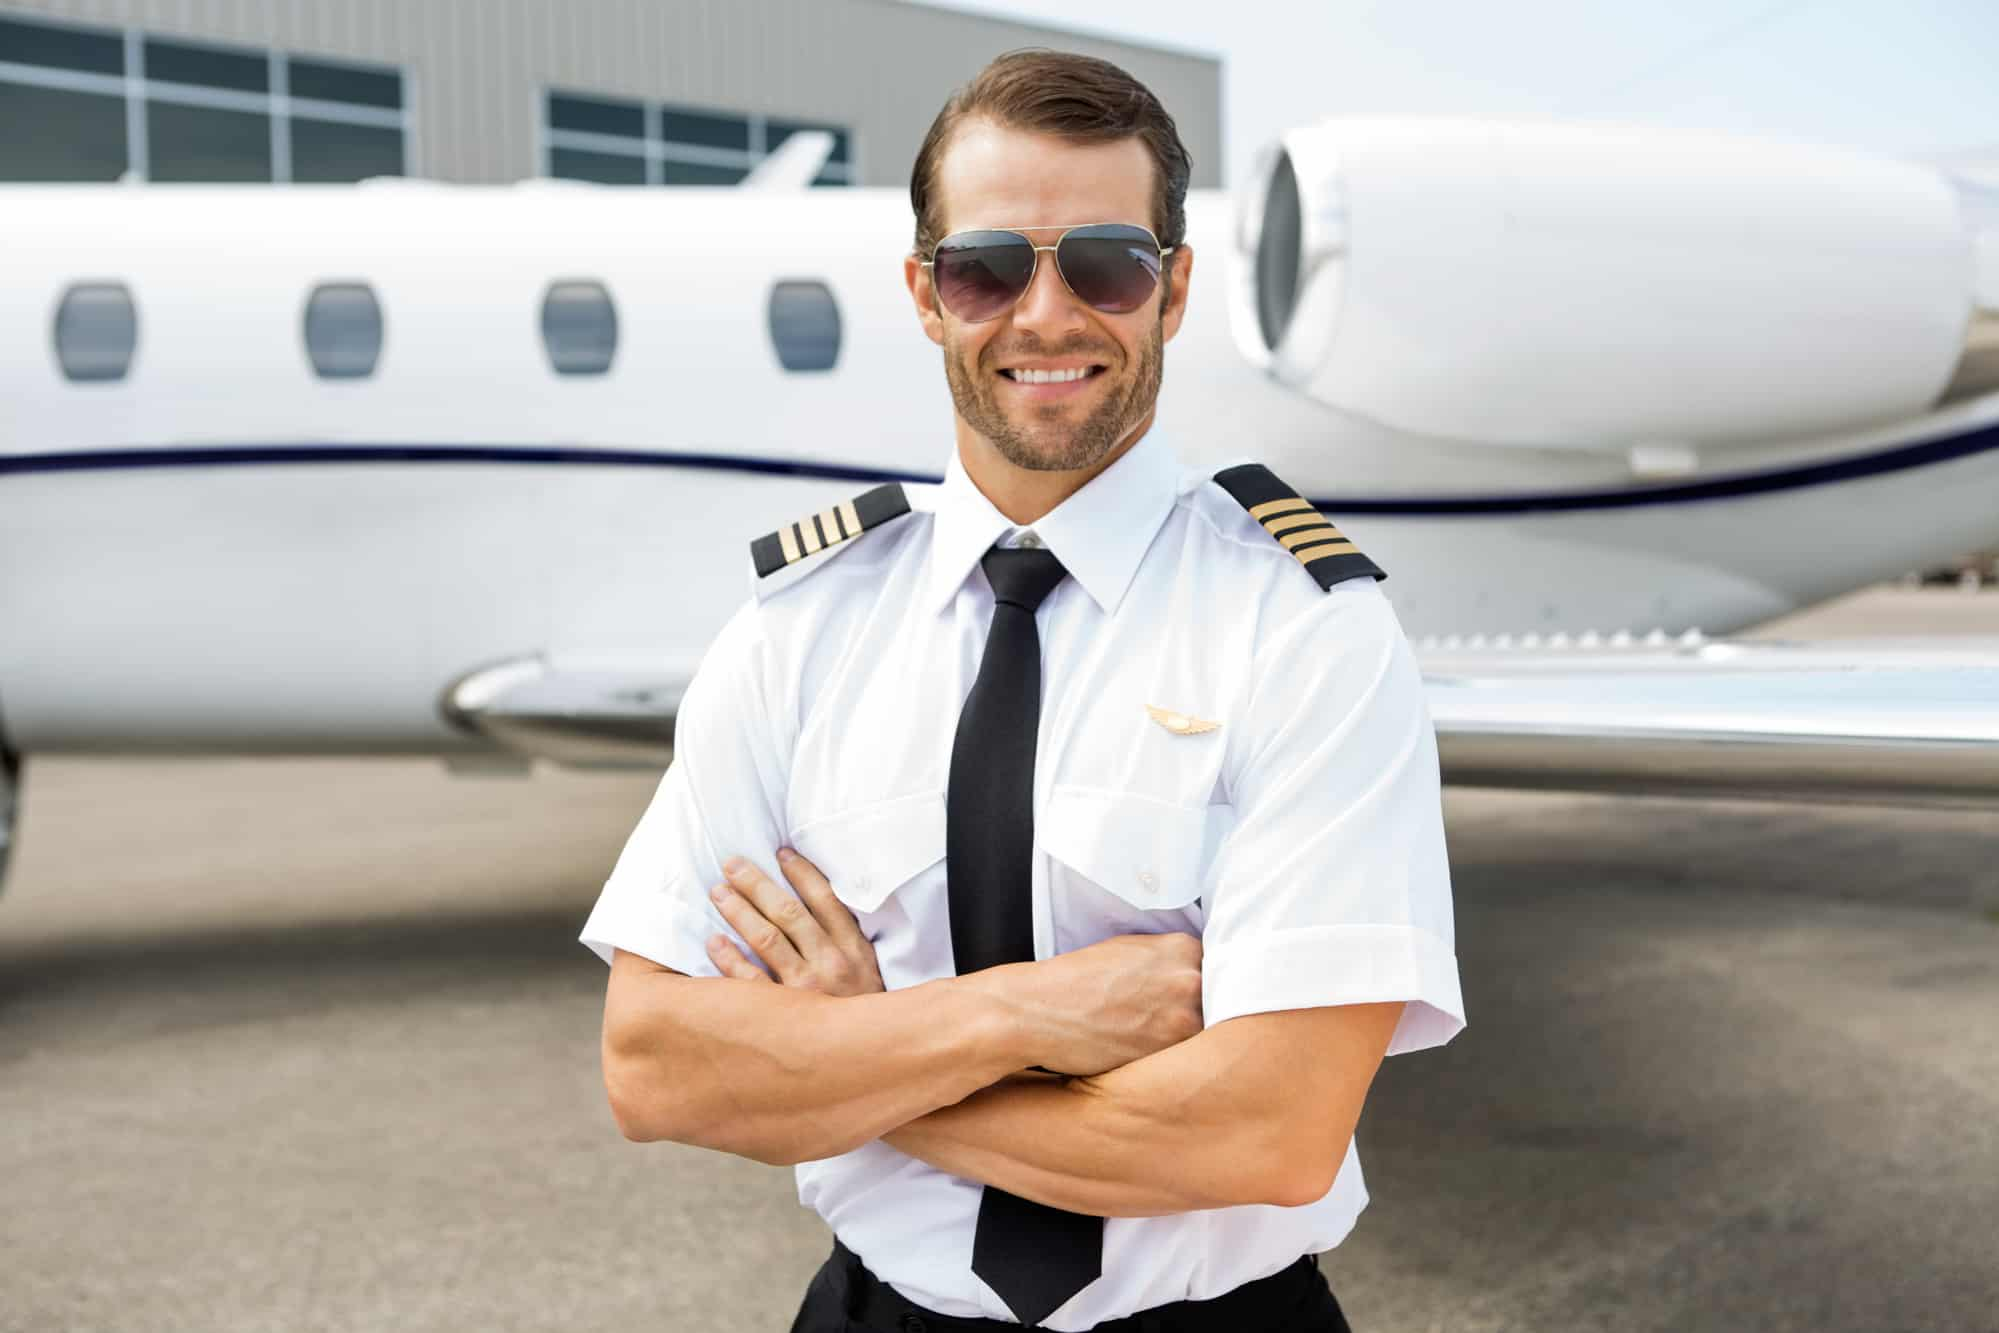 a pilot standing in front of a private jet